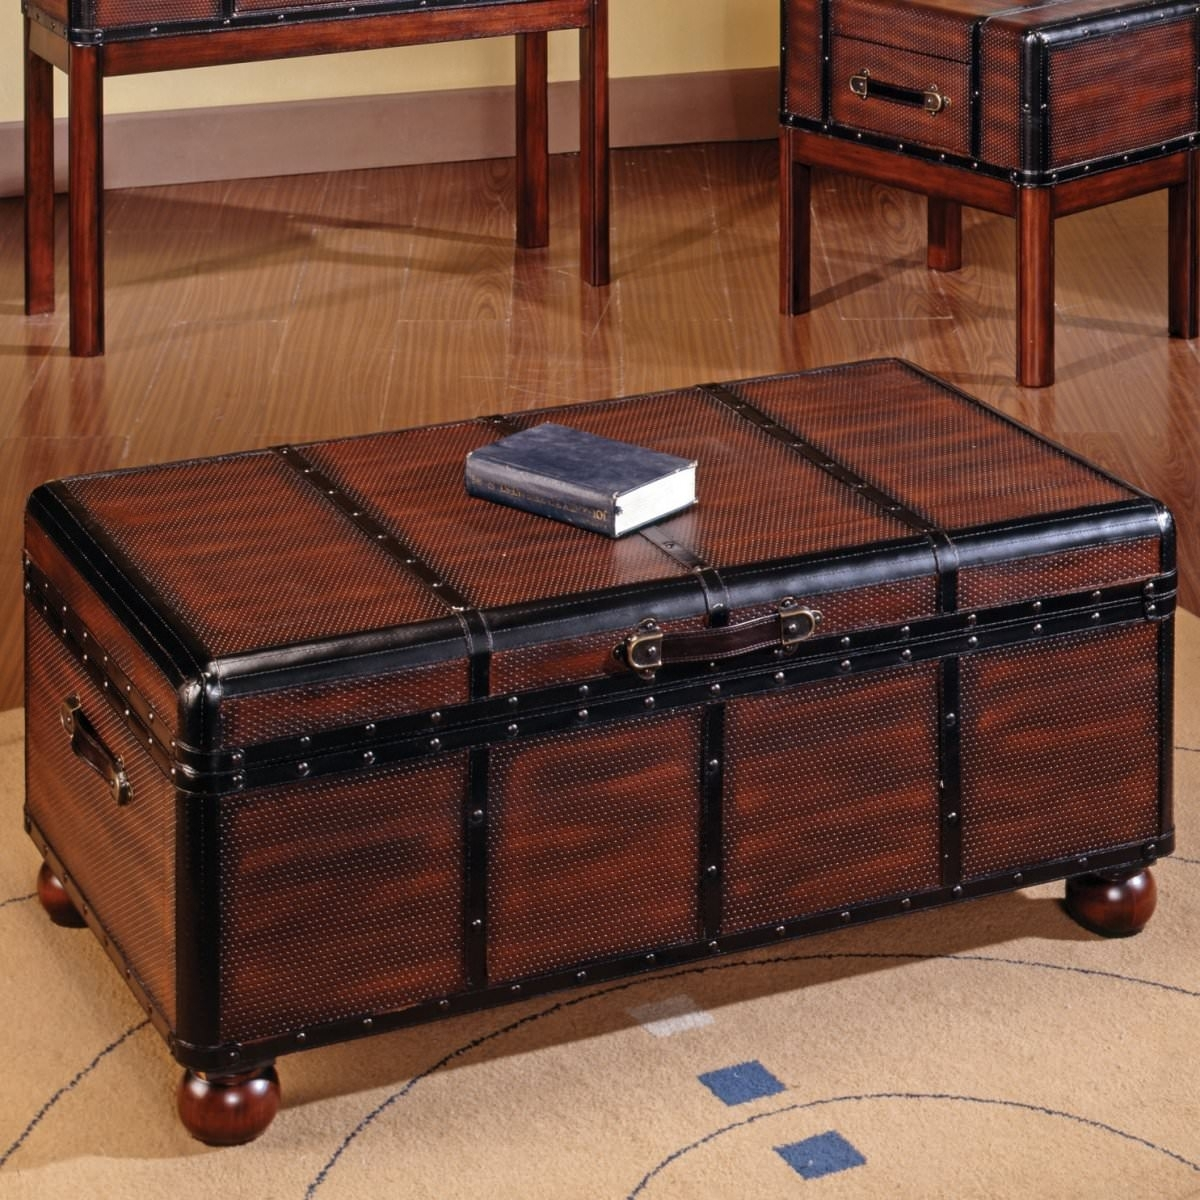 Trunk Coffee Tables In Wonderful Looks! | Sushi Ichimura Decor pertaining to Go-Cart White Rolling Coffee Tables (Image 30 of 30)